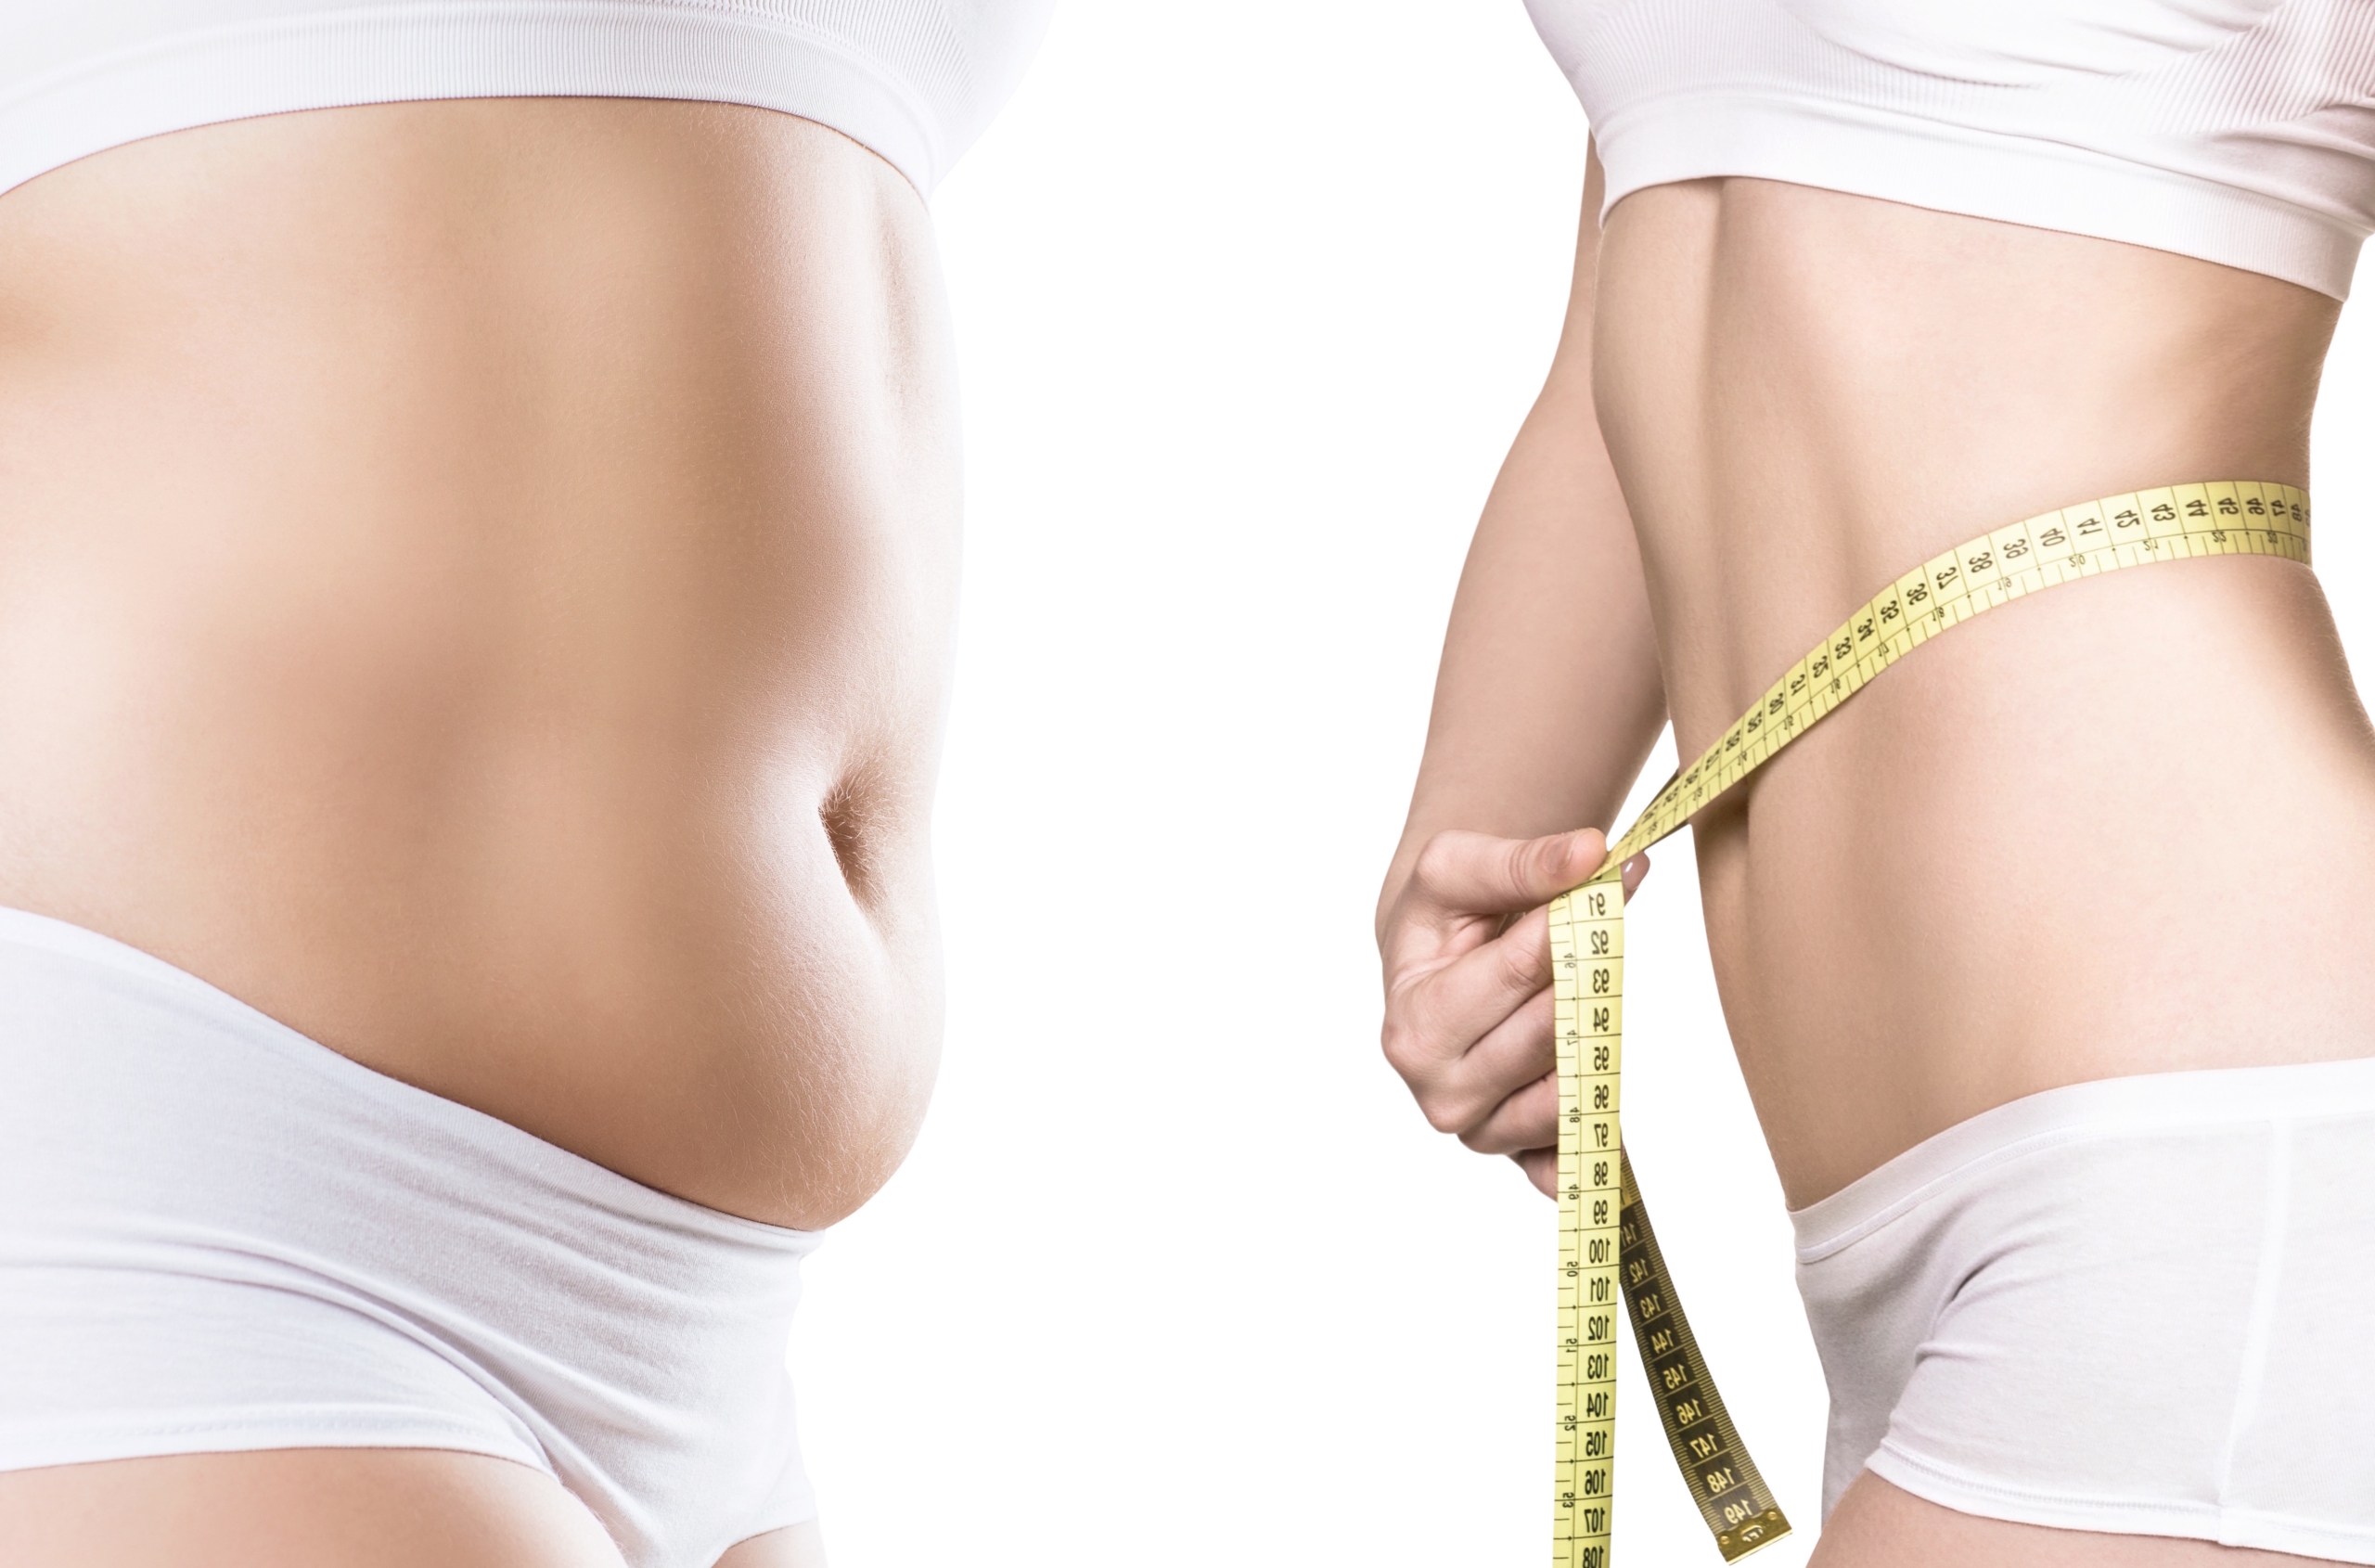 Weight Gain After Liposuction Surgery